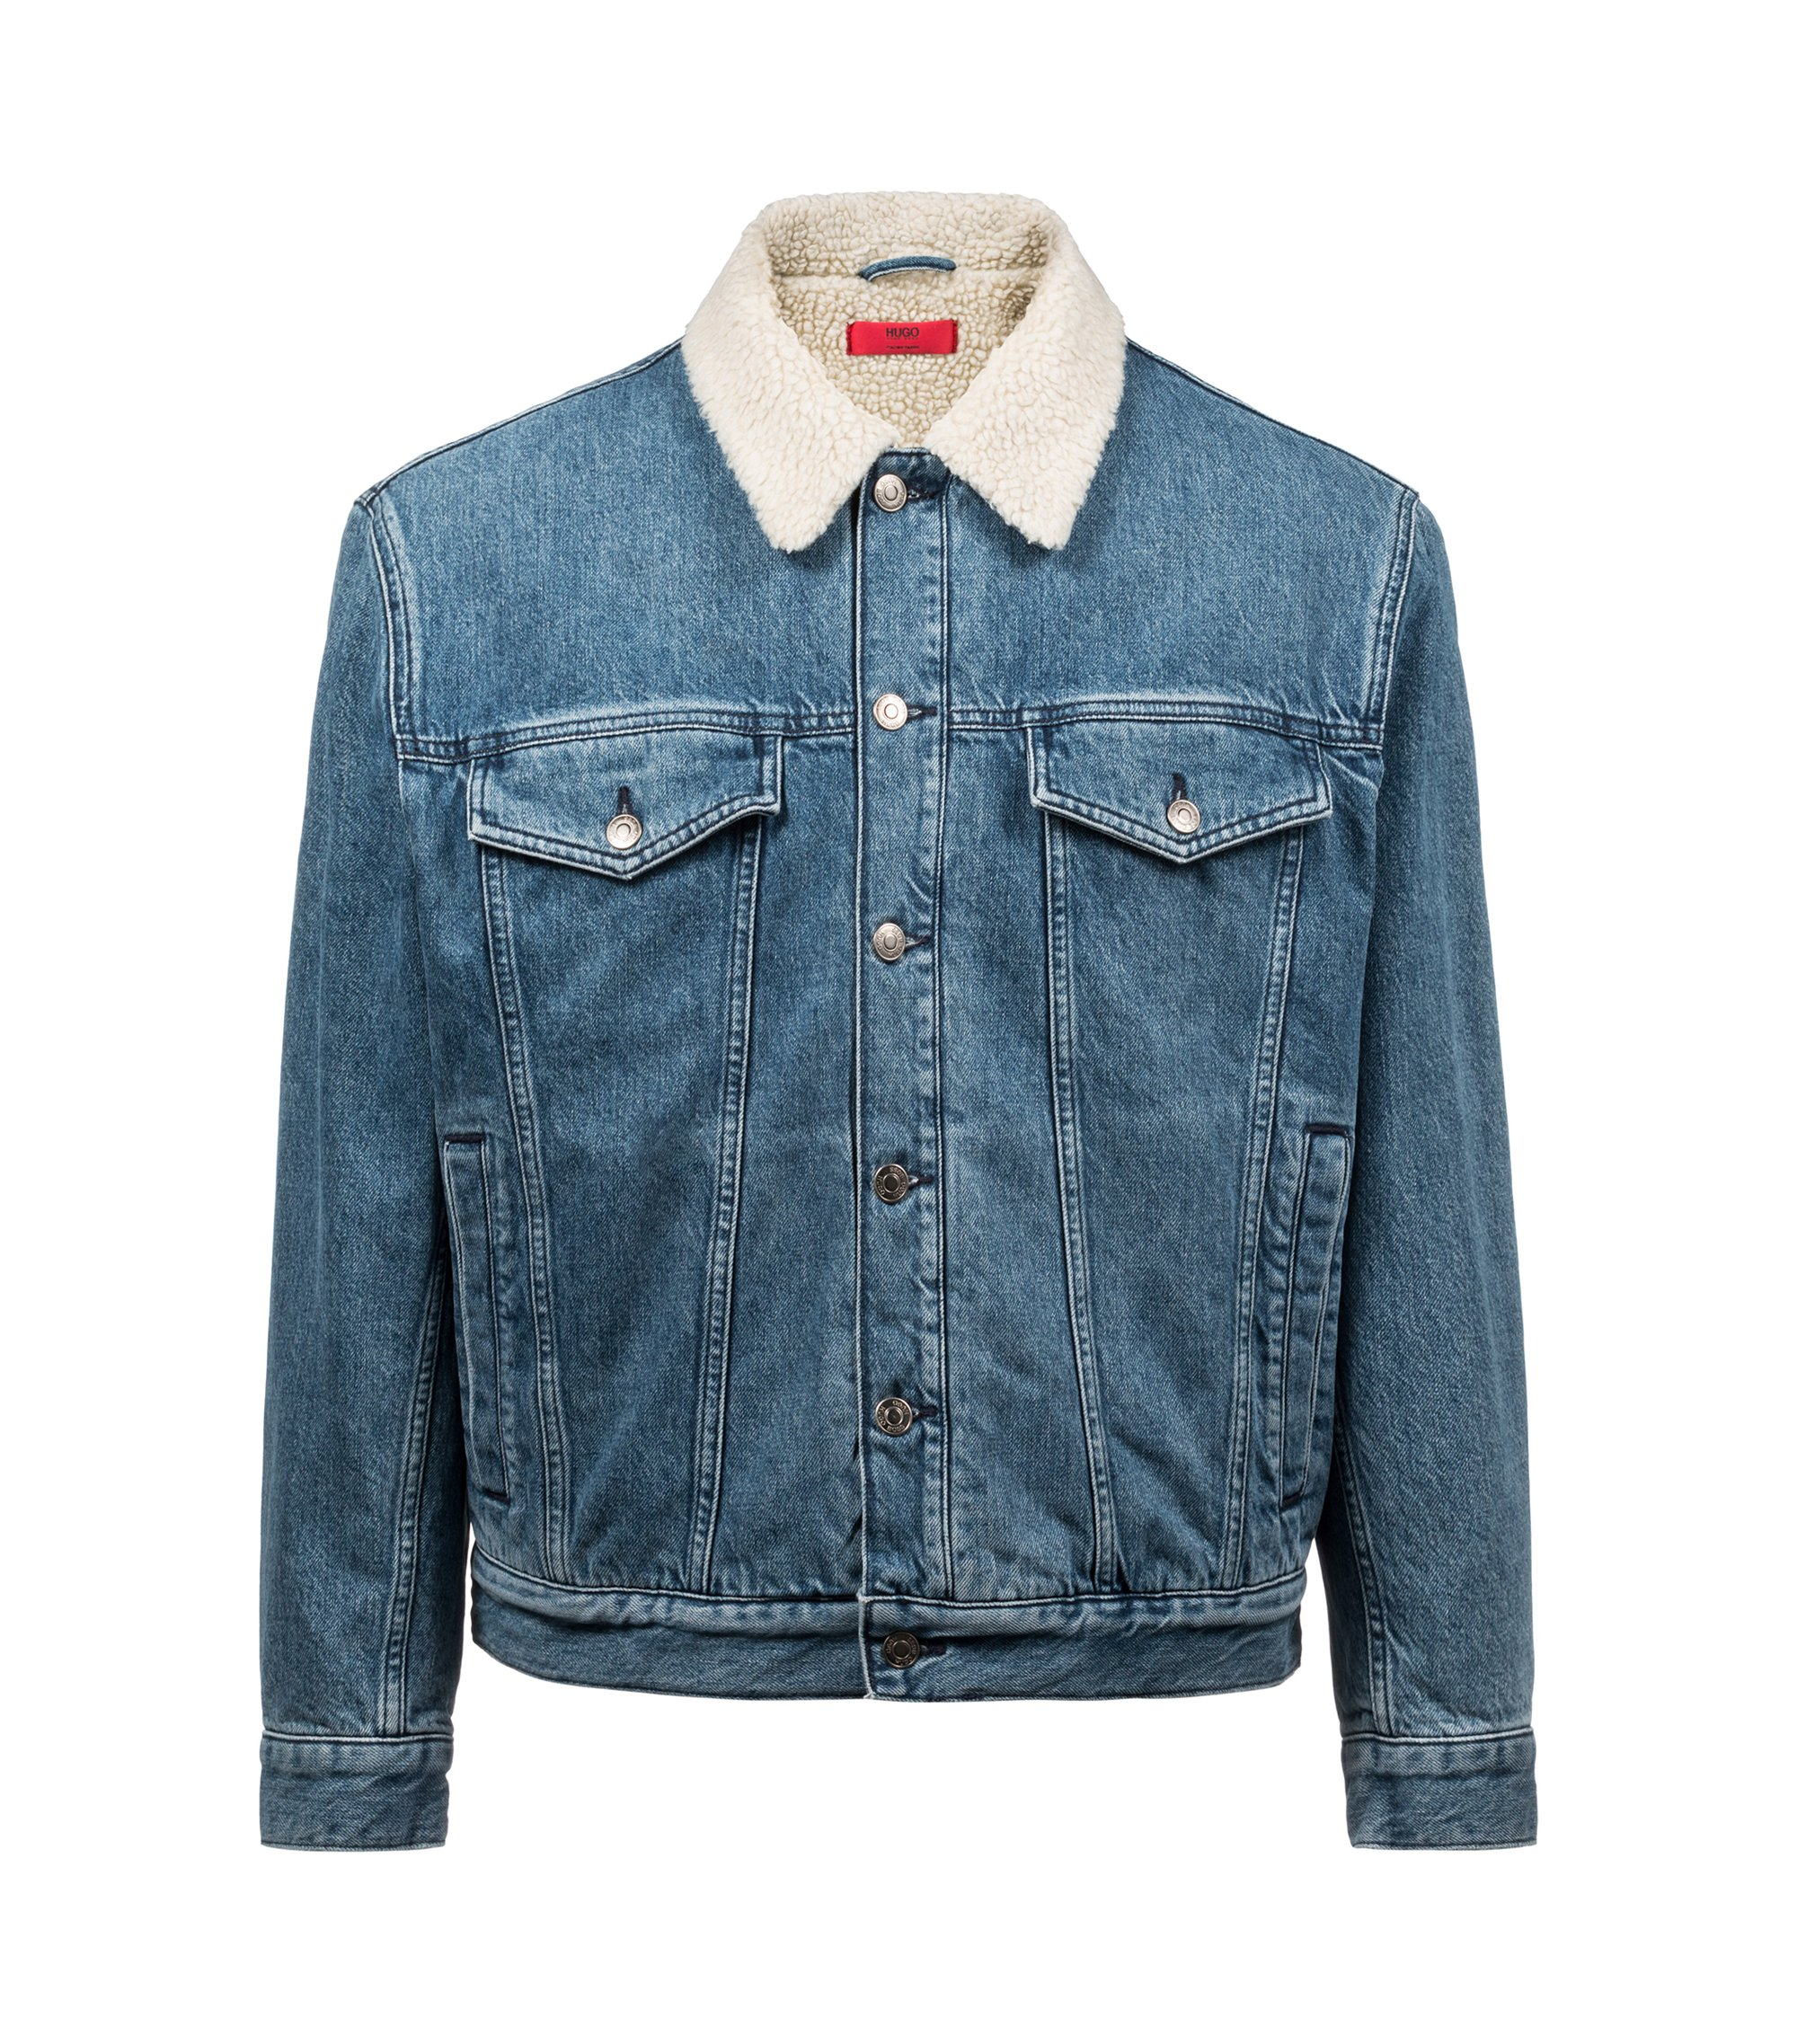 Unisex Italian-denim jacket with fleece collar, Blue